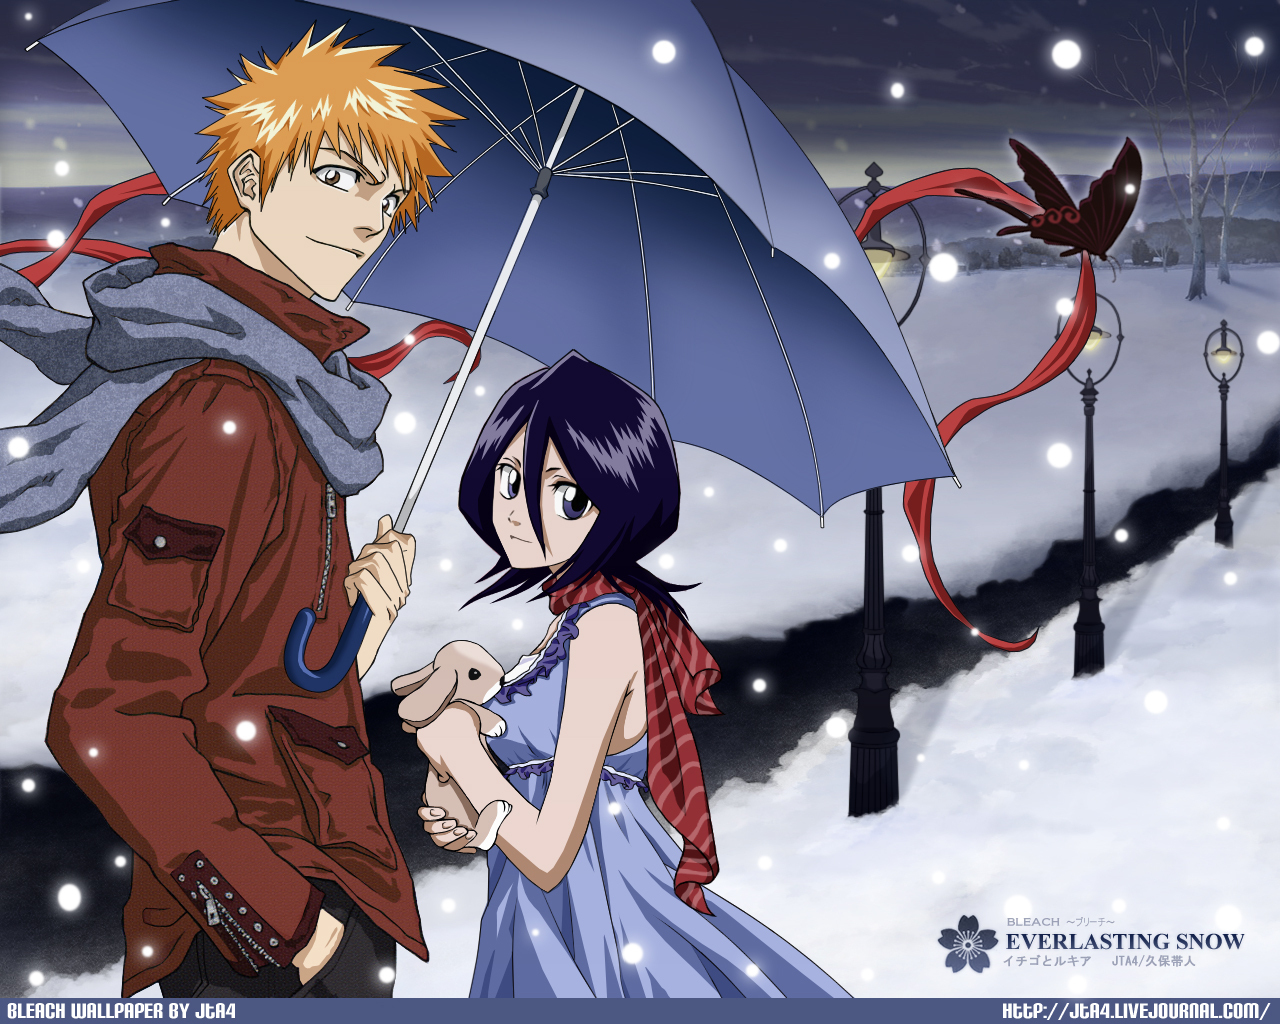 bleach ichigo and rukia images ichigoamprukia hd wallpaper